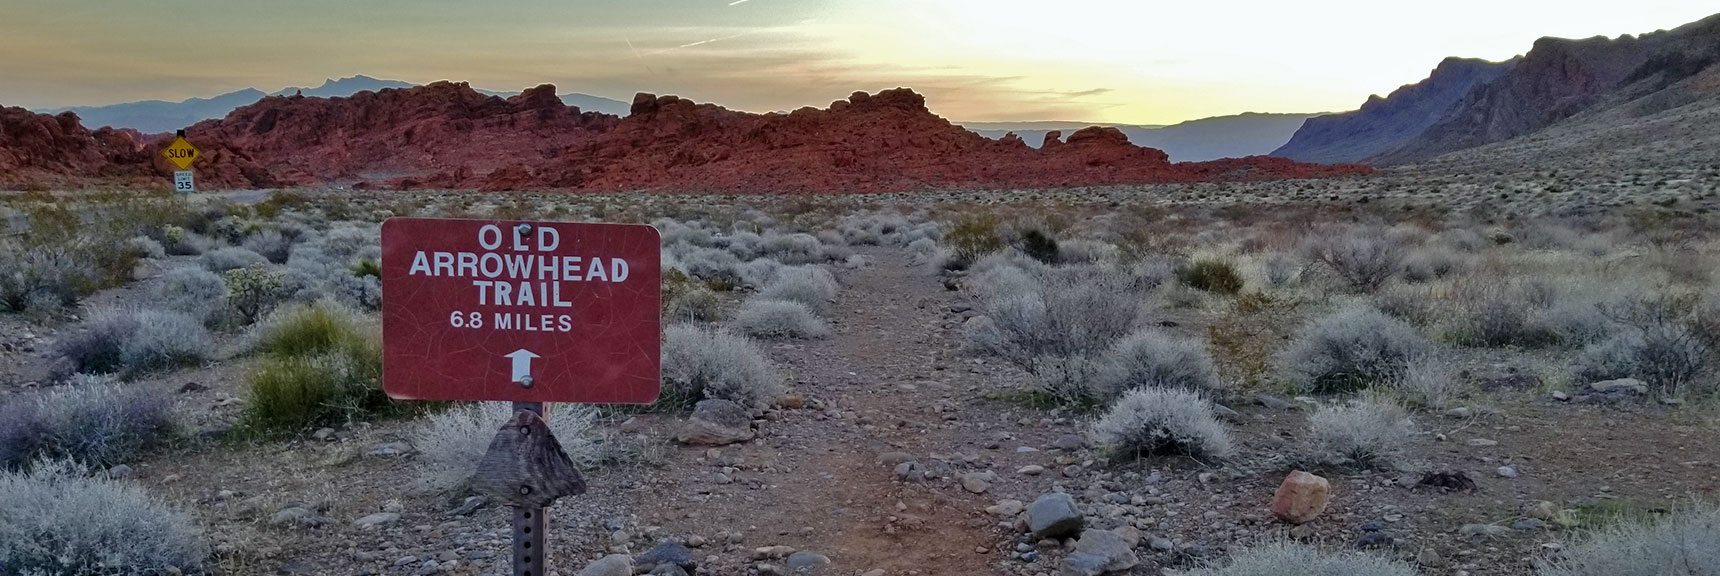 Western Entrance to Old Arrowhead Trail in Valley of Fire State Park, Nevada